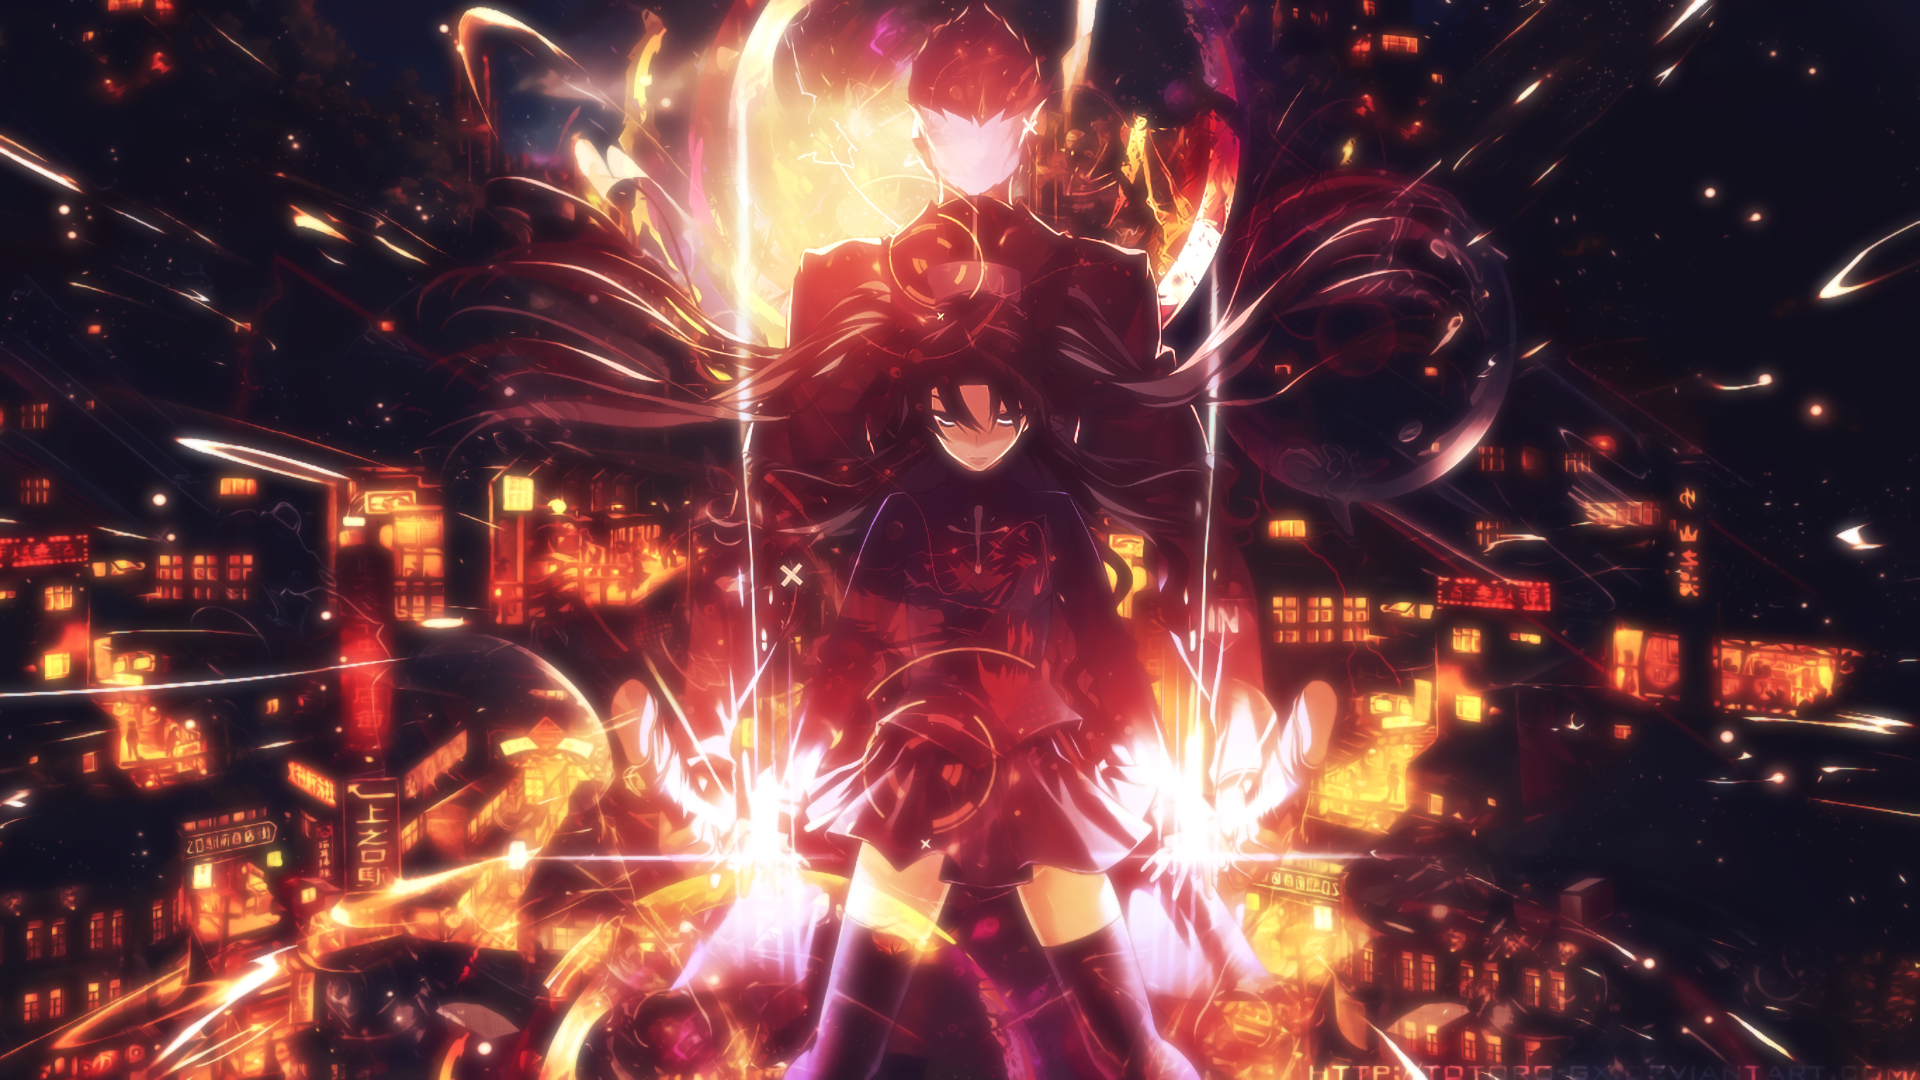 Fate/Stay Night: Unlimited Blade Works HD Wallpaper